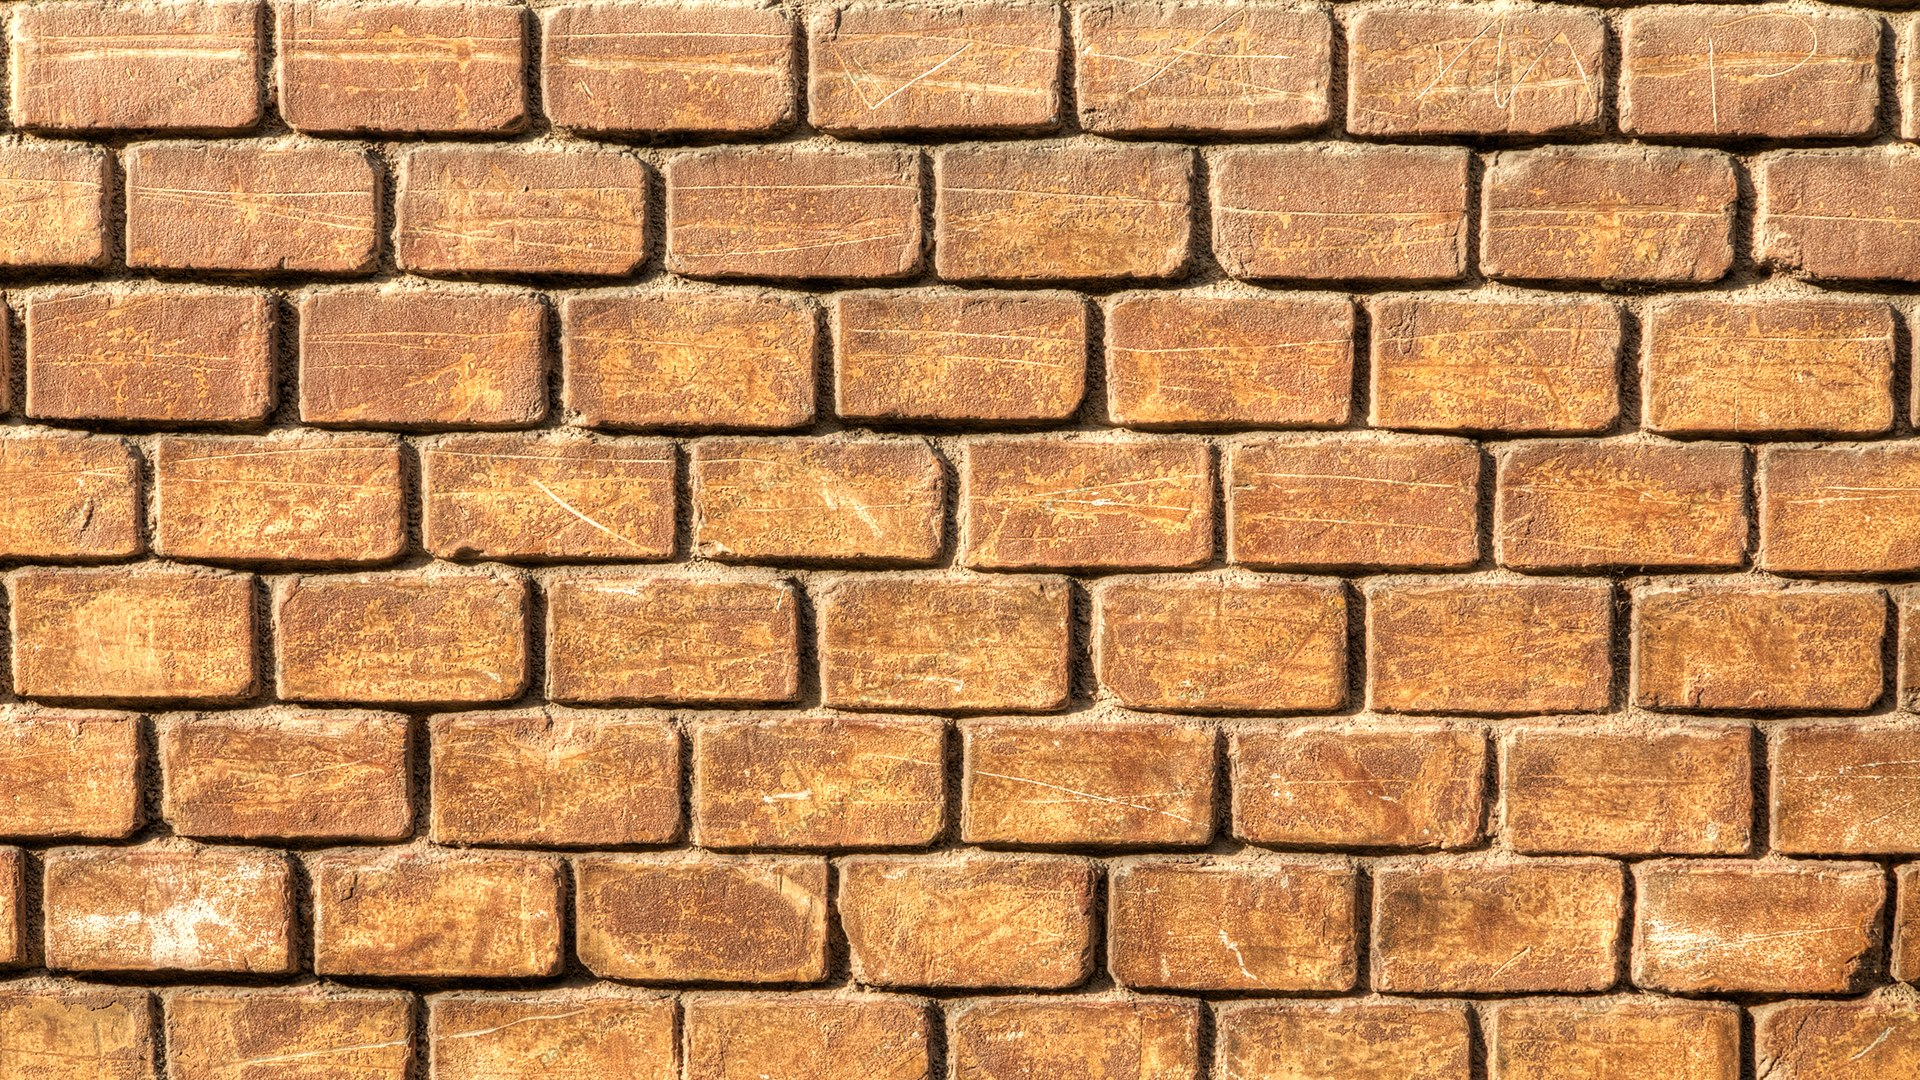 Old Rugged Brick Wall HD 1920 x 1080p